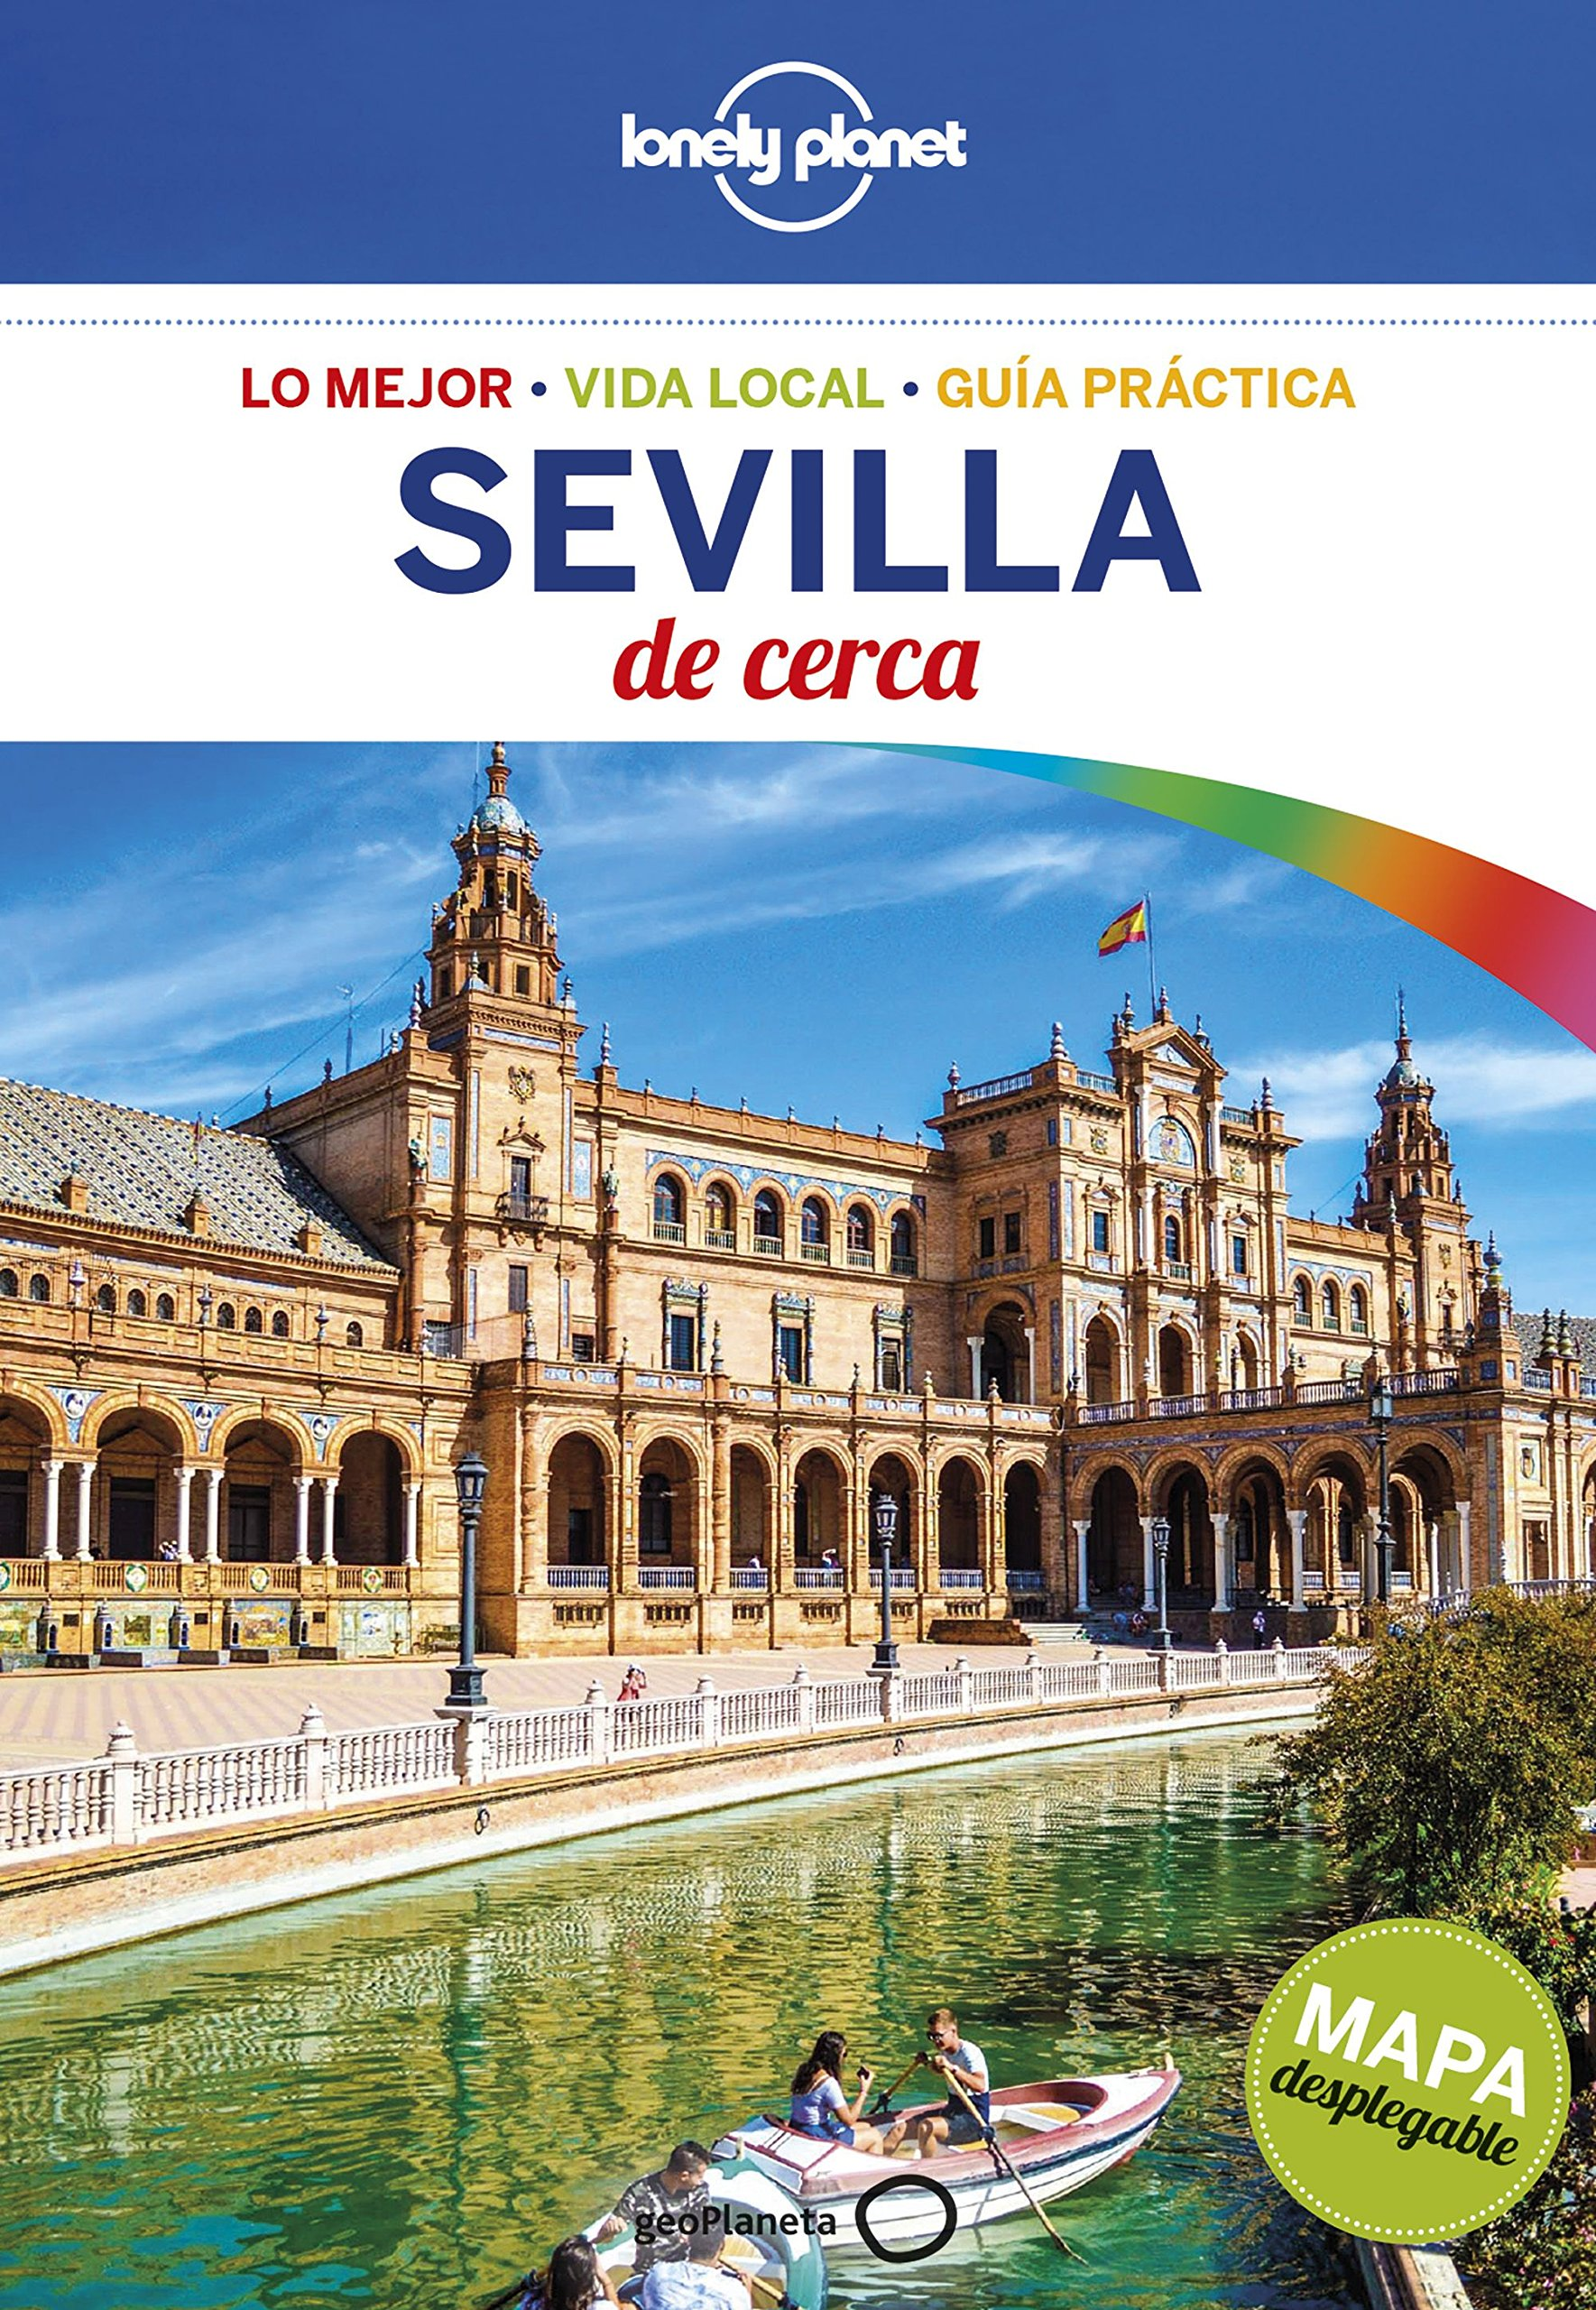 Sevilla de cerca 2 (Guías De cerca Lonely Planet): Amazon.es: Molina, Margot: Libros